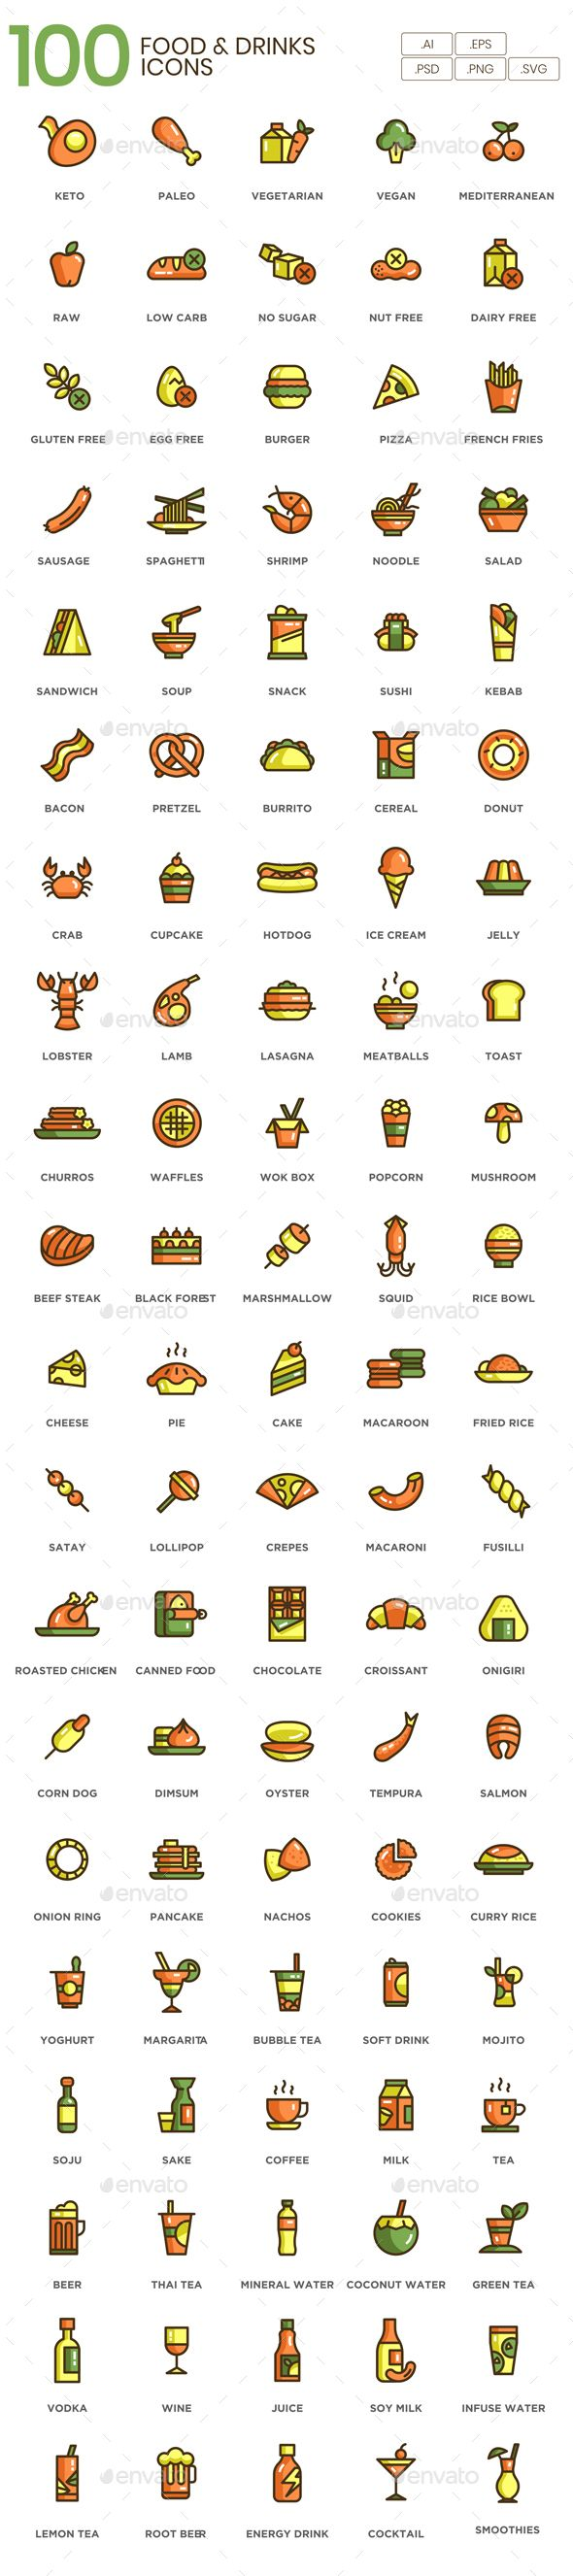 Food & Drink Icons - Eco Series  Fully customisable set of